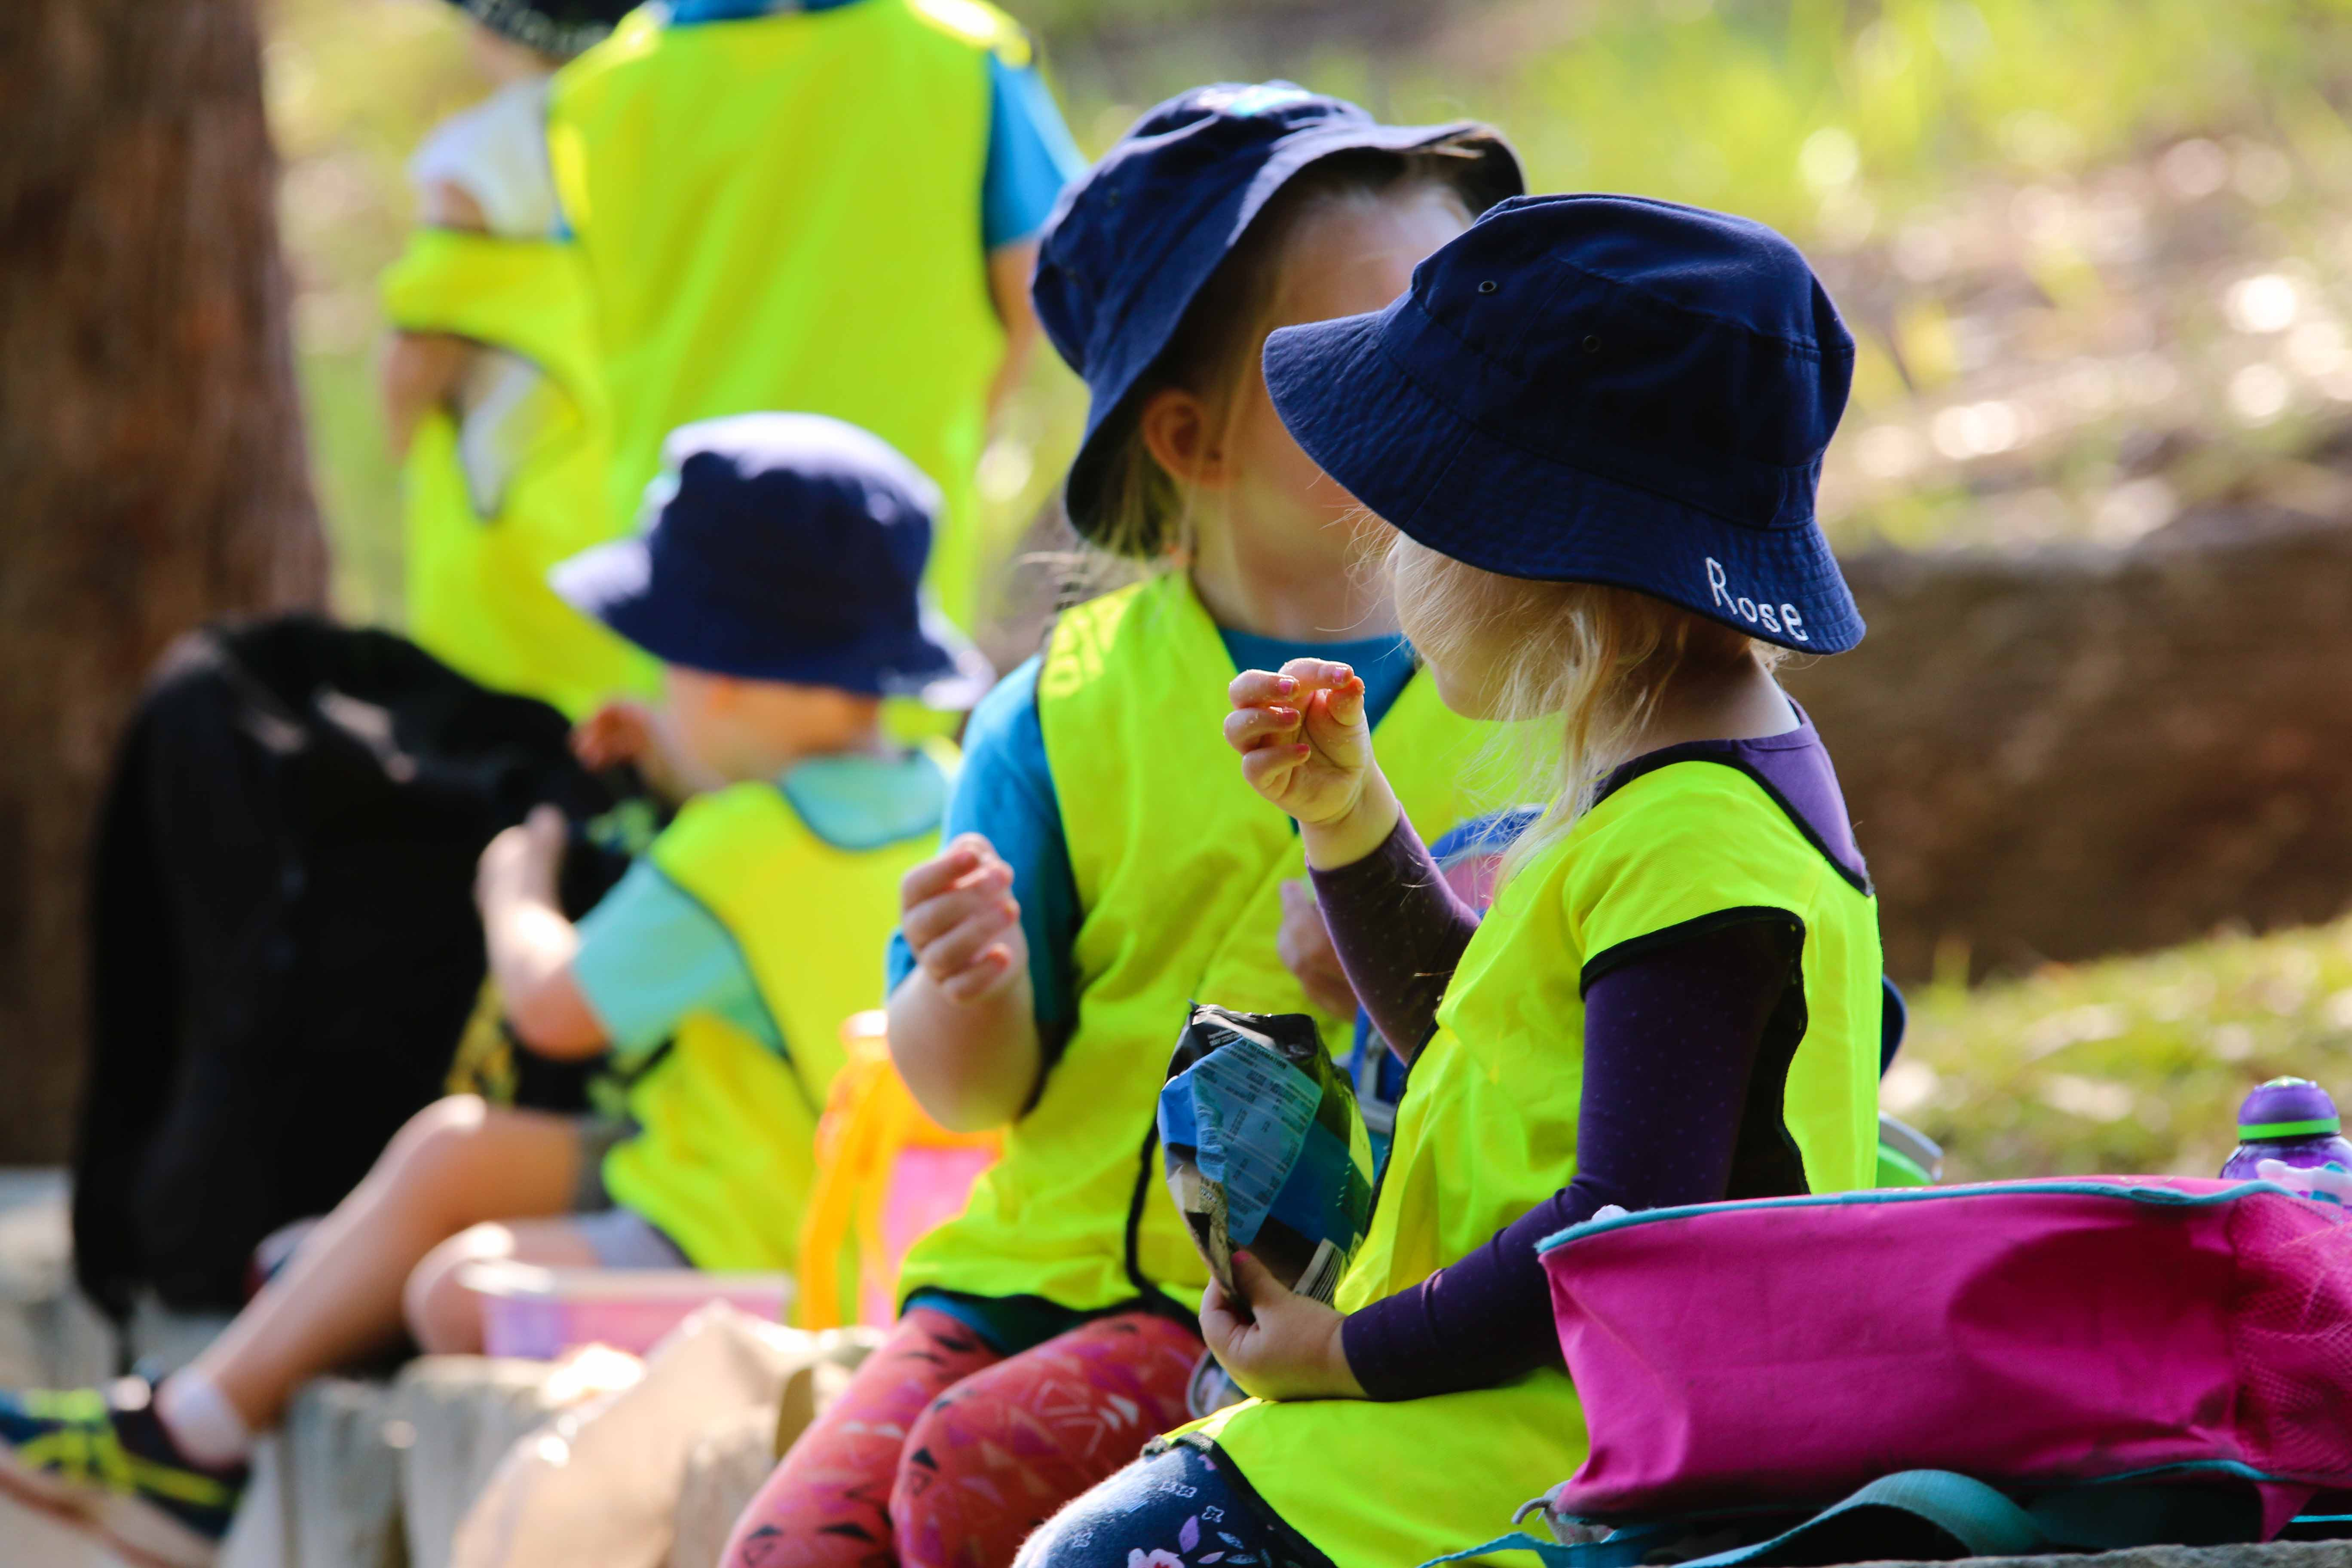 Kindy students eating moring tea at Bush Kindy - Suncoast Little Learners